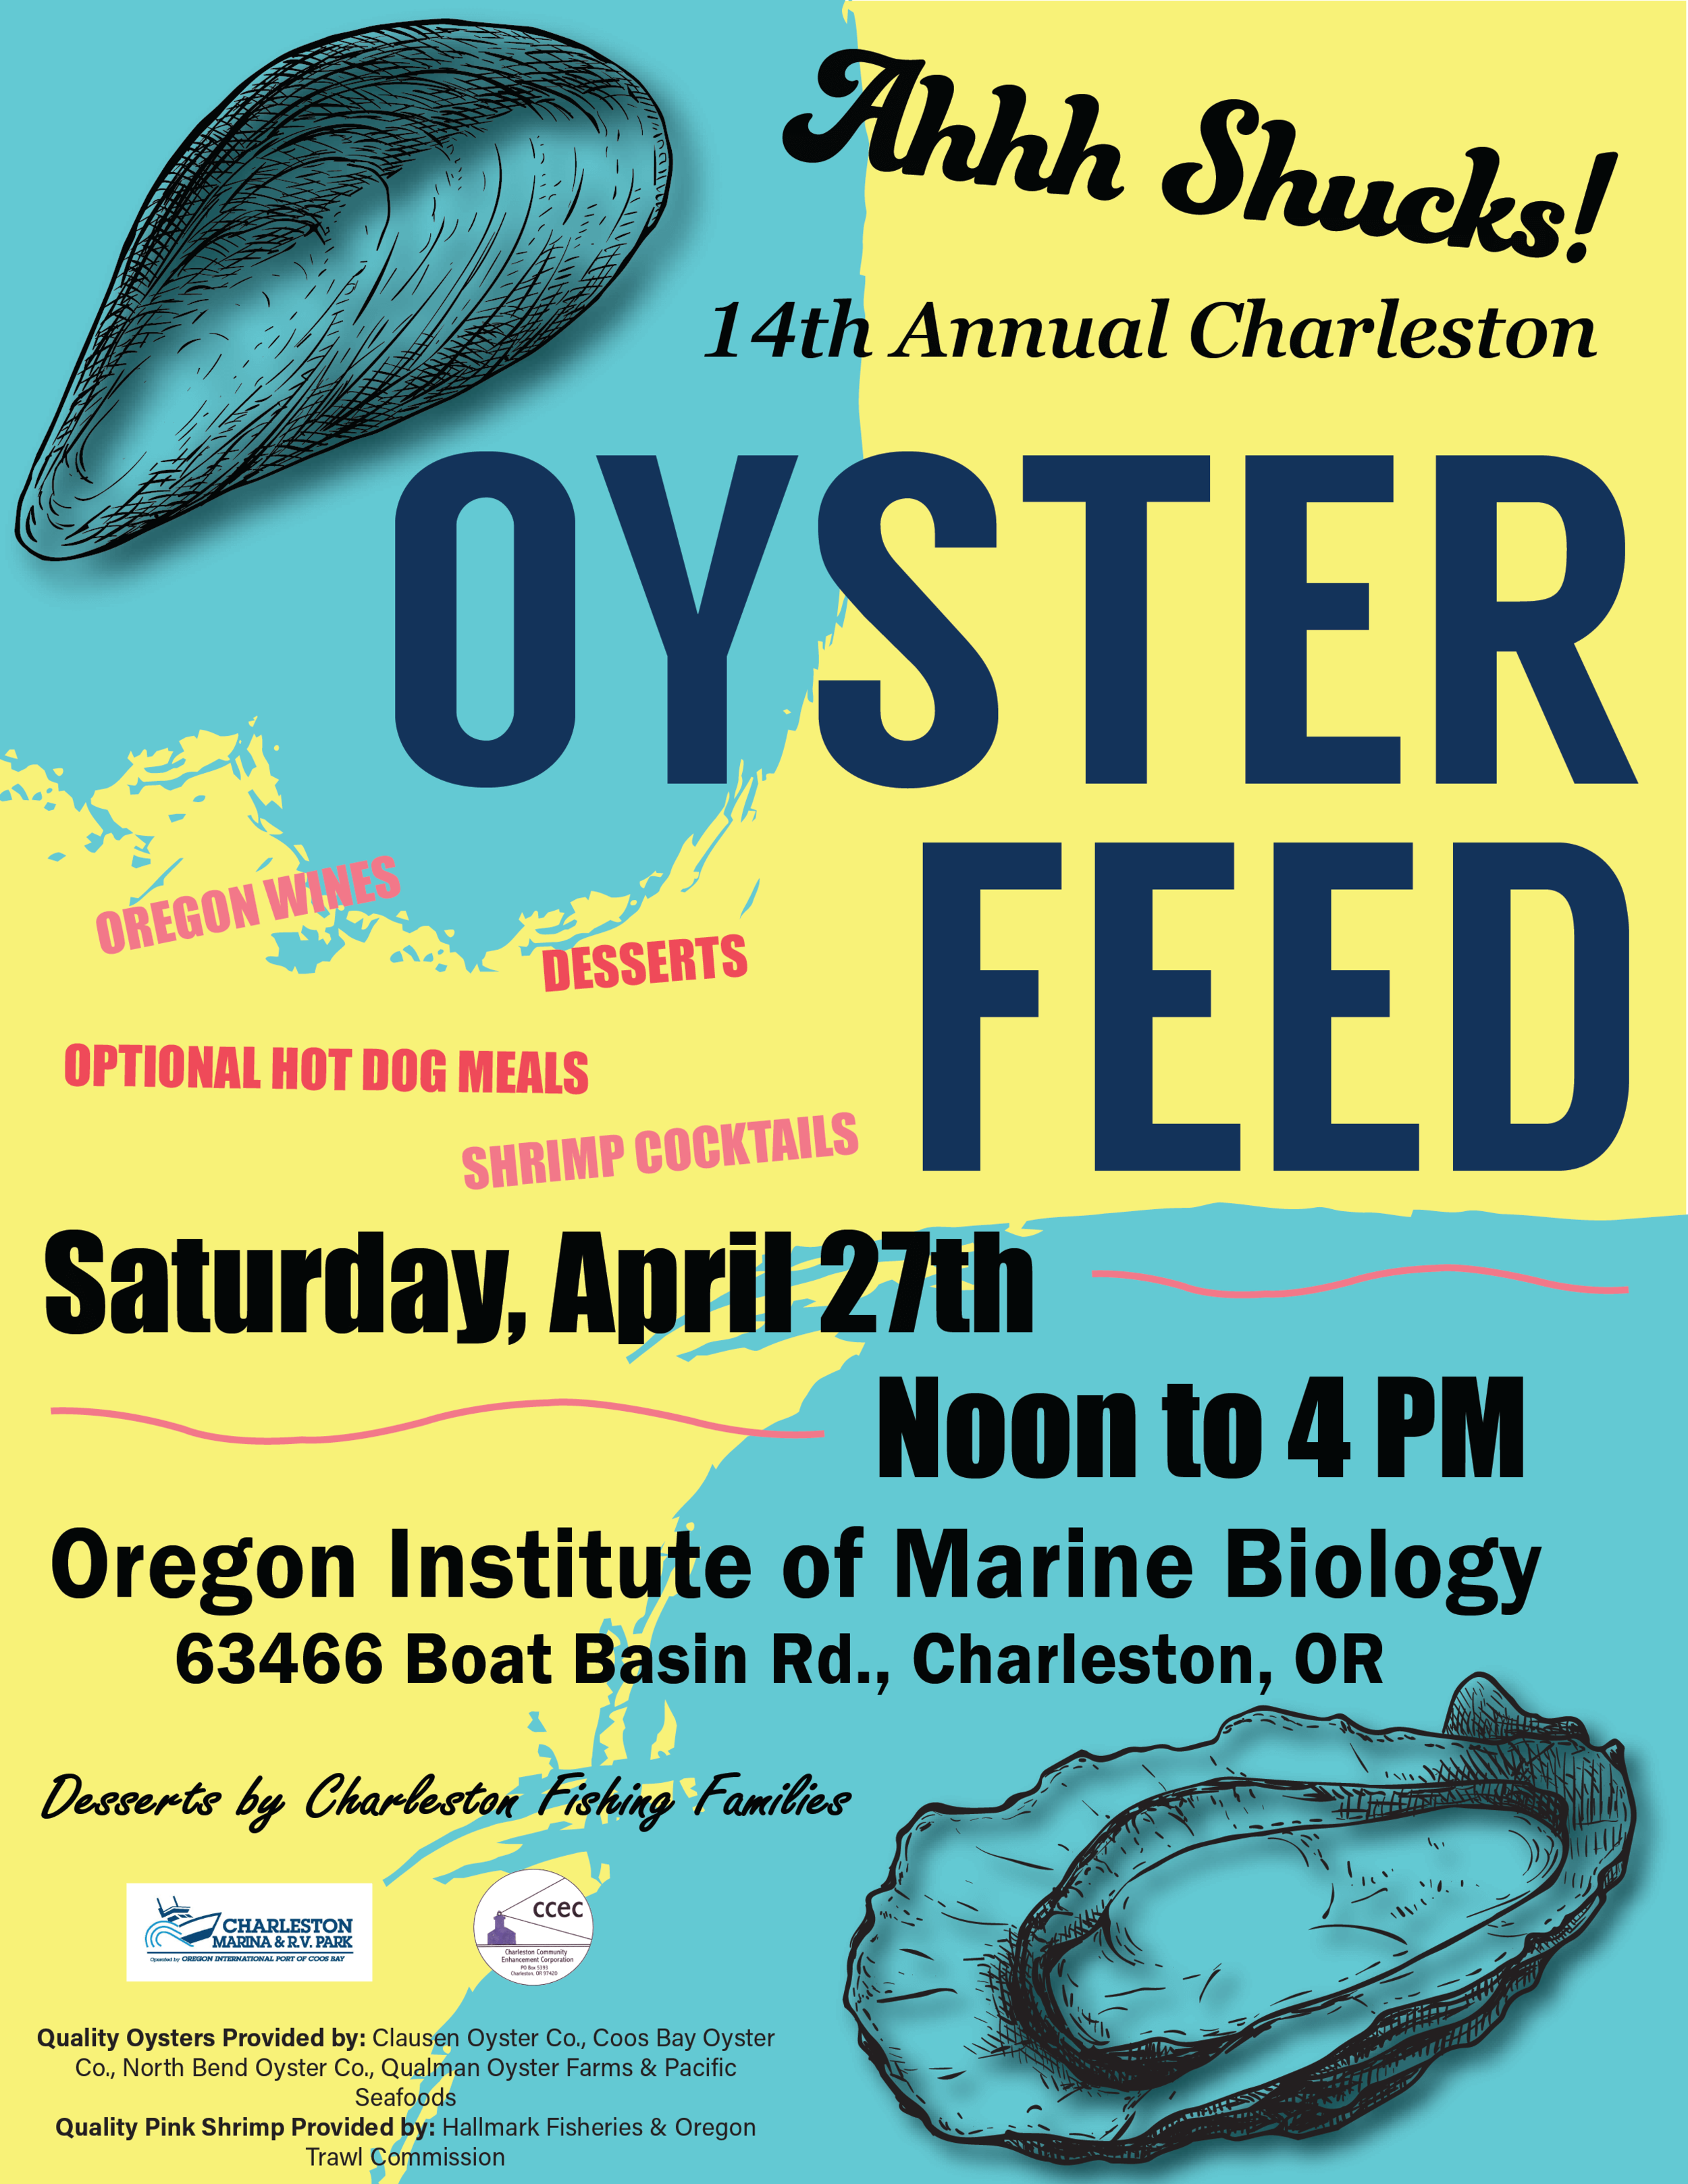 2019 Oyster Feed Poster